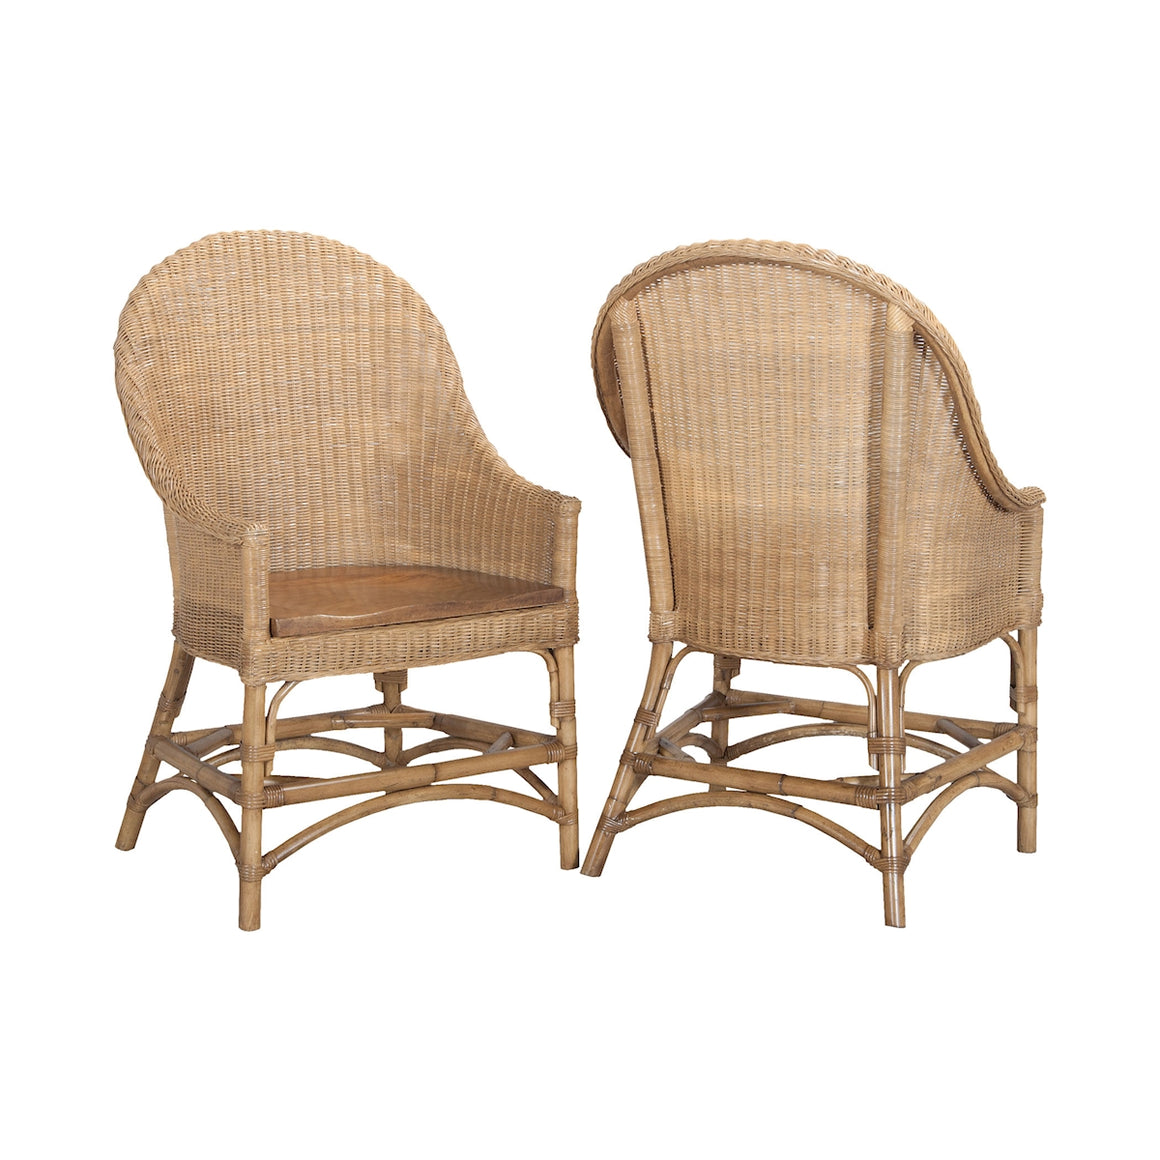 Catskill Woven Chair - Pair